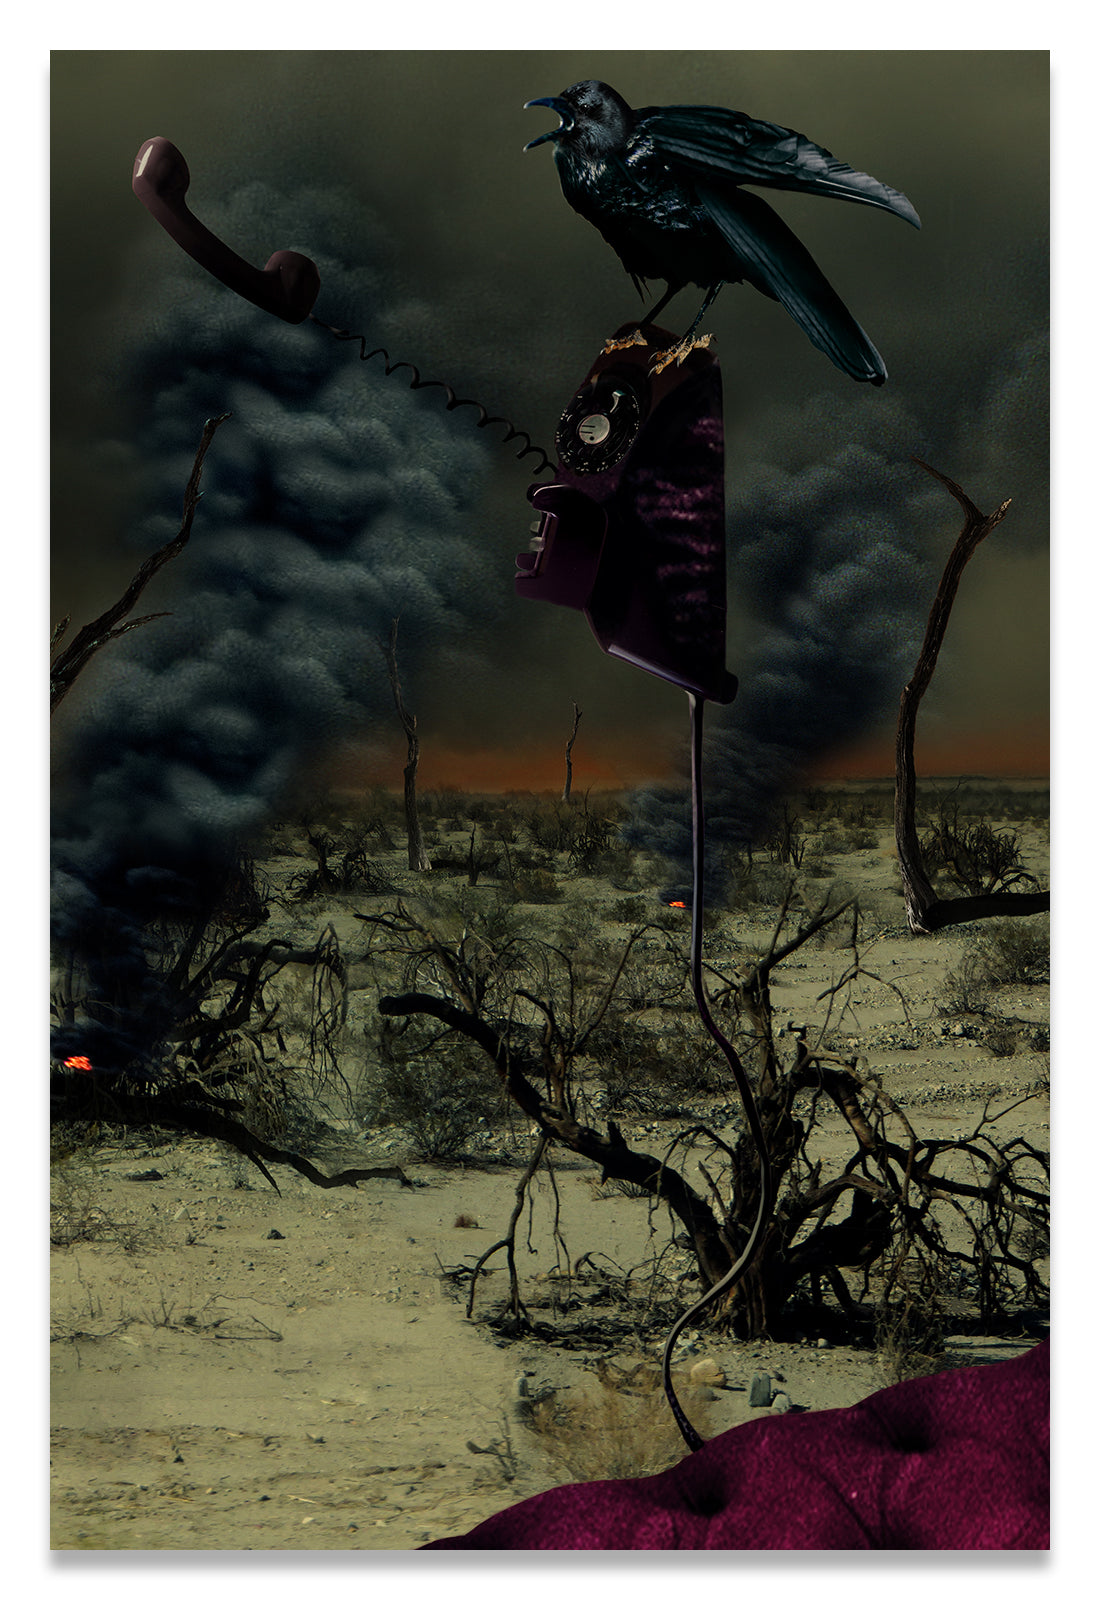 Vertical Portrait of a Crow in a Apocalyptic World.